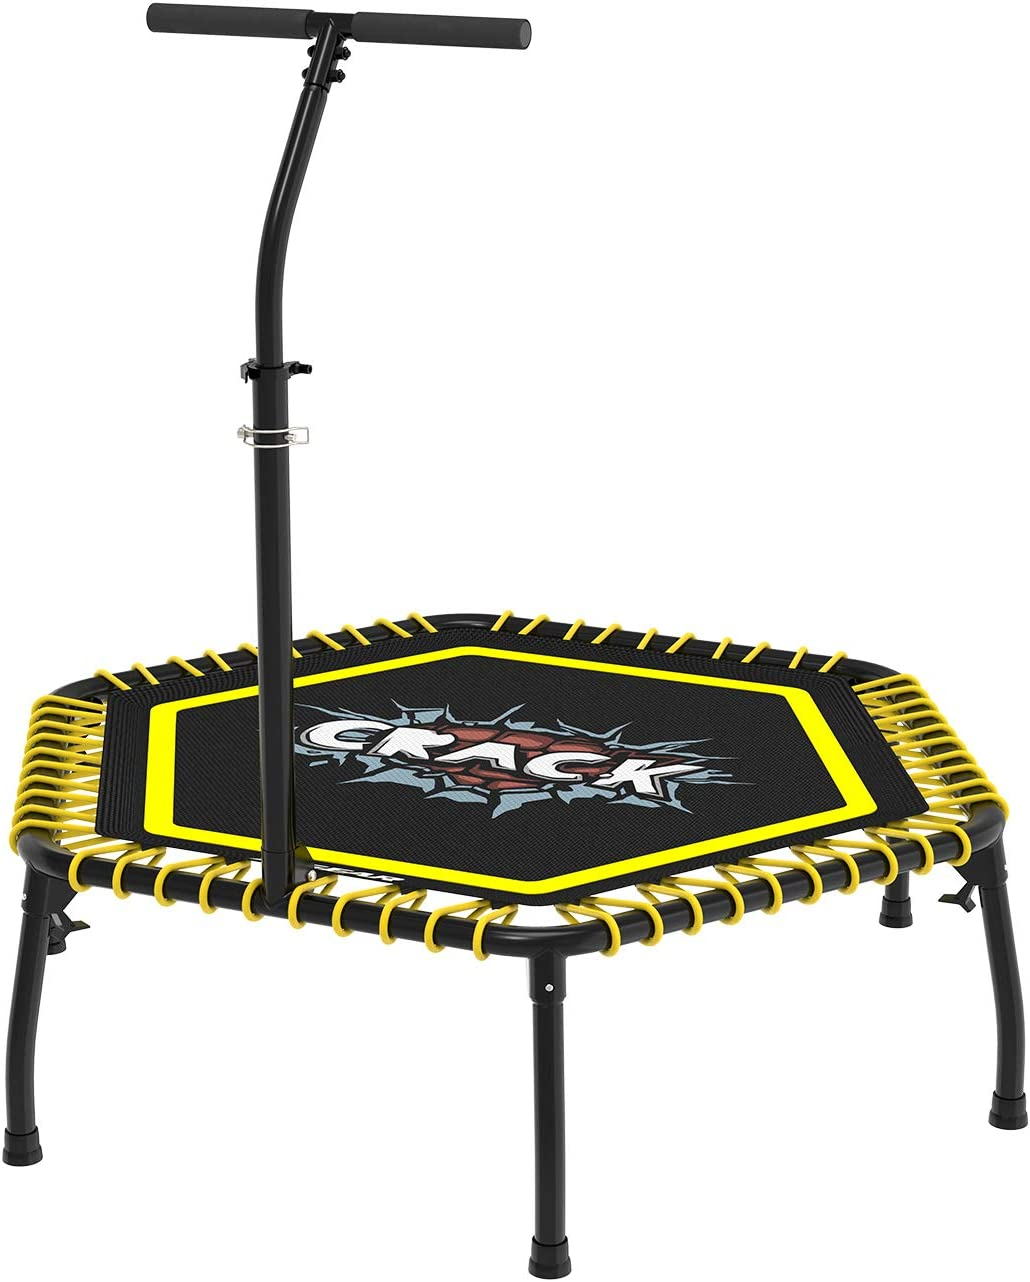 Durable Mat XGEAR Mini Fitness Trampoline Jumping Cardio Trainer Workout Portable Sports Trampoline Indoor Outdoor Workout,Max Limit 330 lbs Aluminum Frame Quiet and Safe Bounce